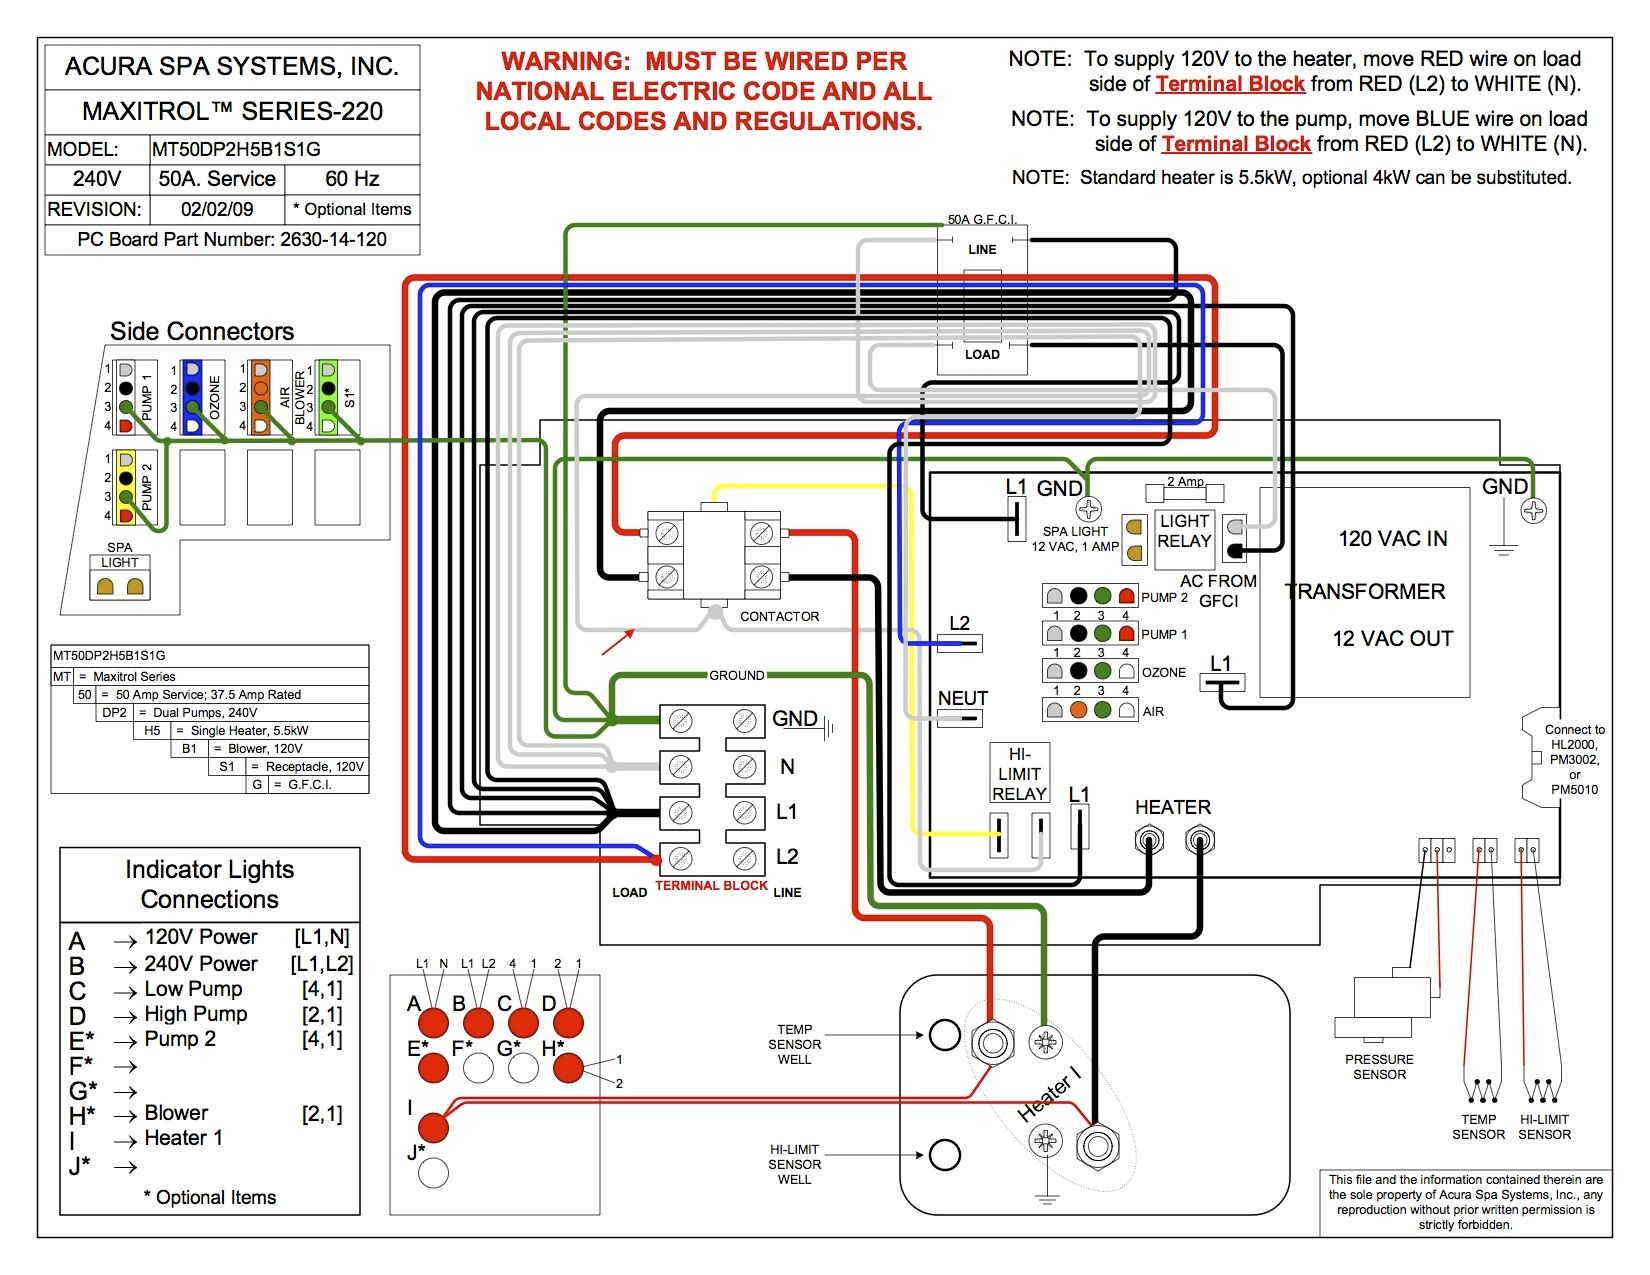 Acura Megatrol    Wiring       Diagram    MT50DP2H5B1S1G   Twinsprings